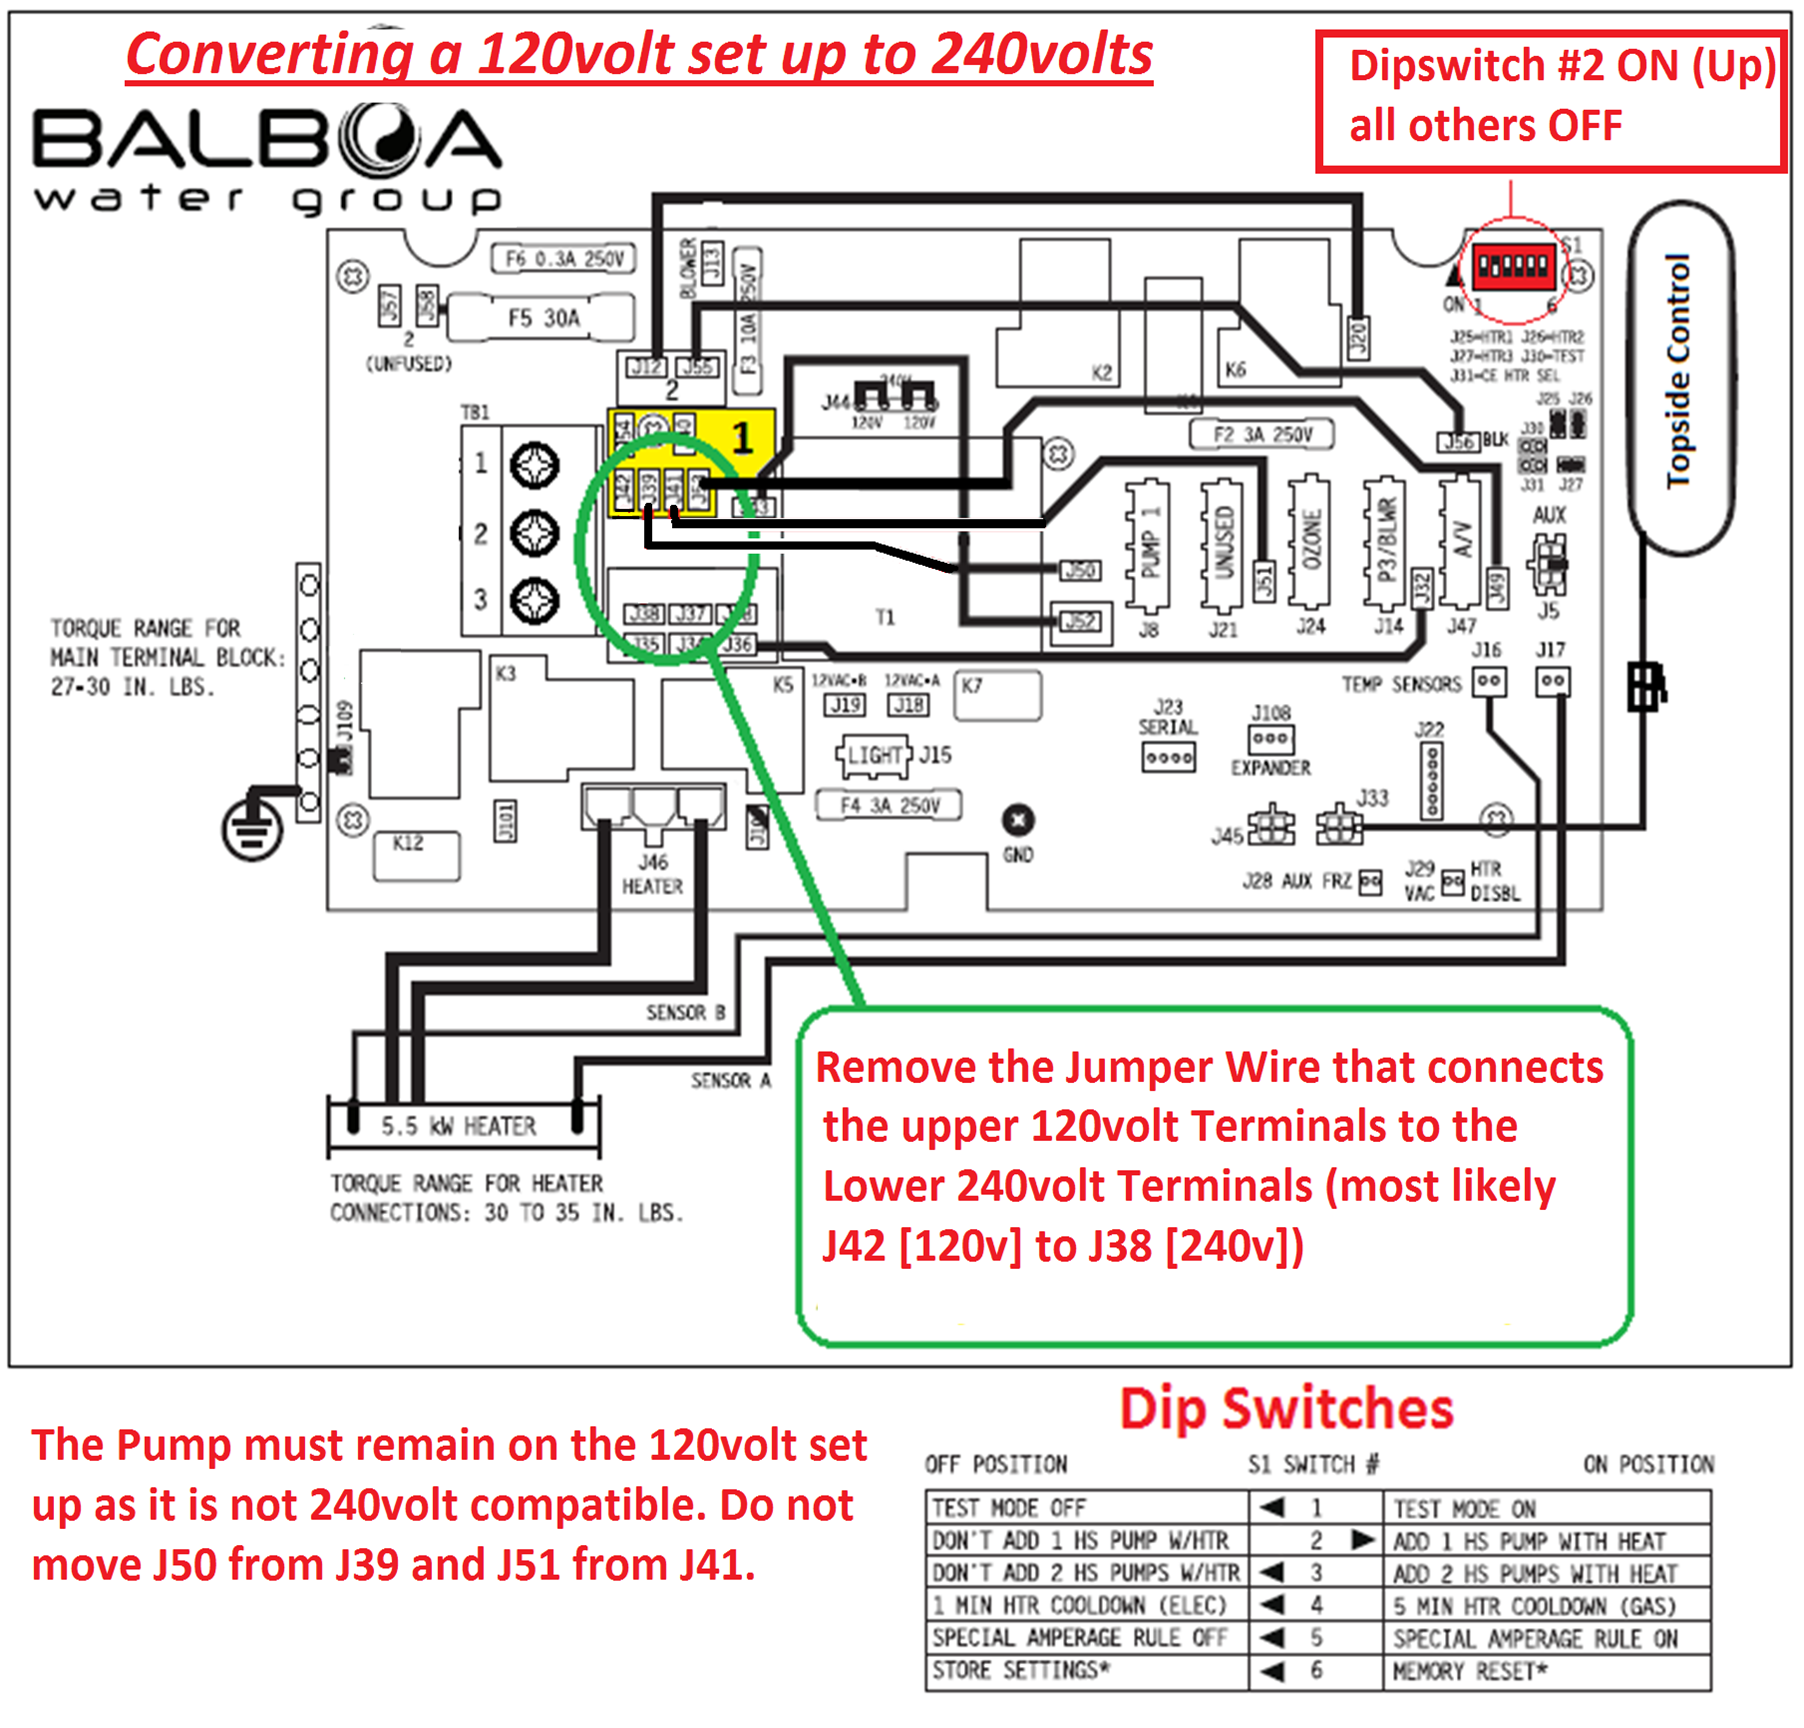 Balboa Spa Pack Wiring Diagram - Wiring Diagram Expert on spa system diagrams, balboa spa 52531 suv, balboa spa parts diagram, balboa r574 wiring-diagram, spa electrical circuit diagrams, balboa hot tub circuit diagrams, balboa circuit board wiring diagram, balboa spa control diagram, hot springs wiring diagrams,